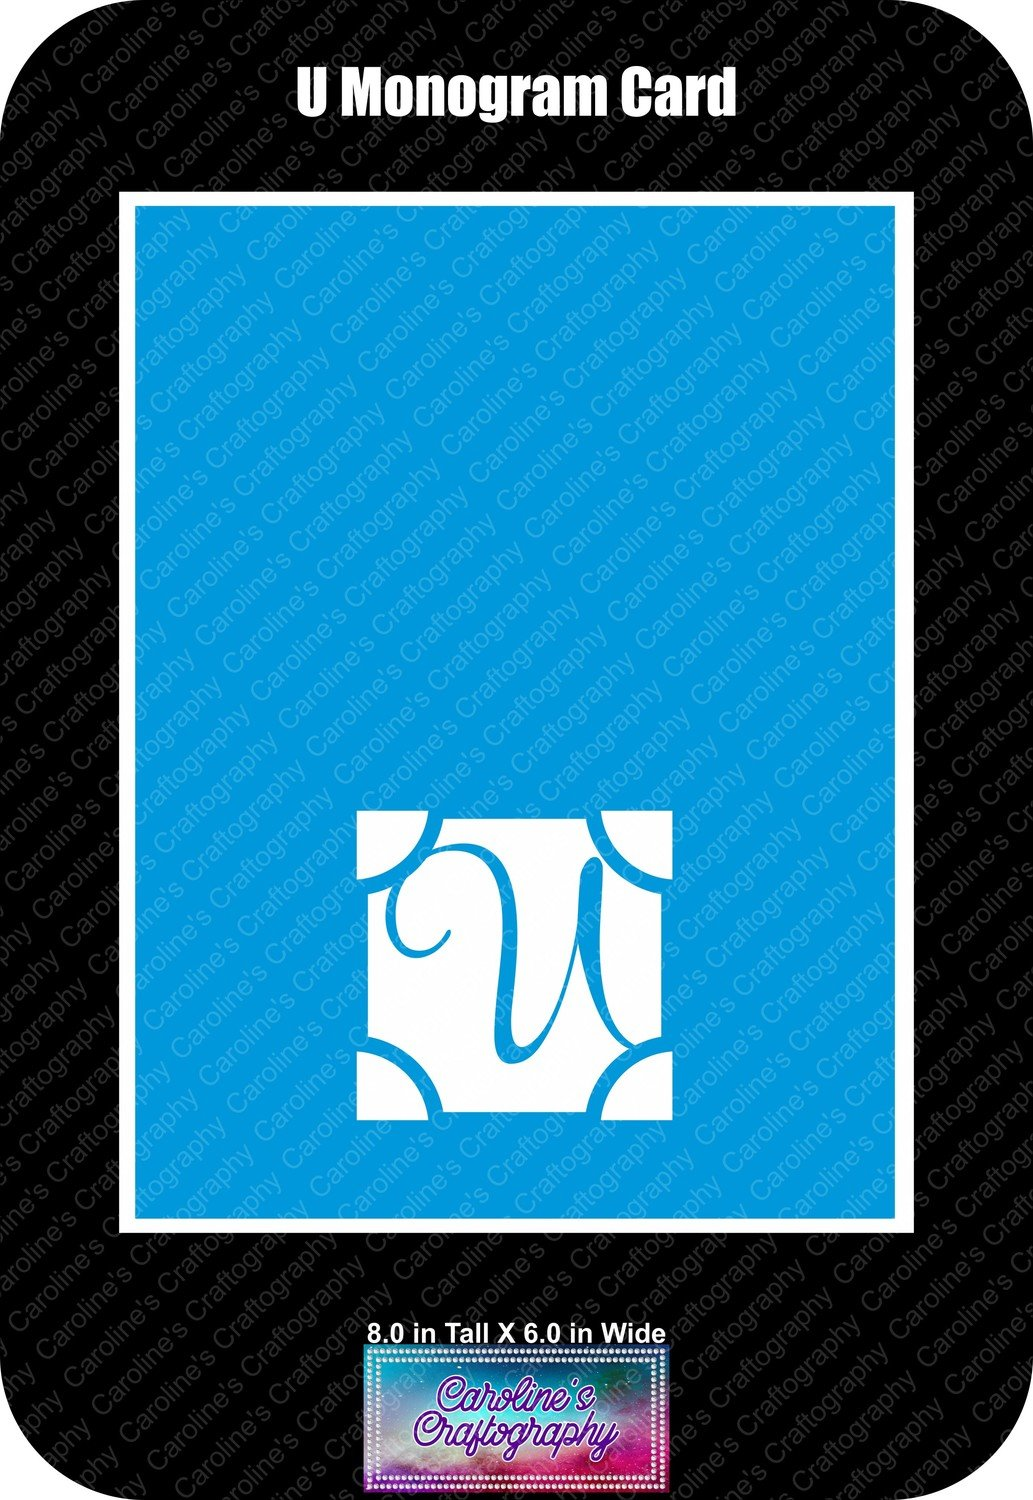 U Monogram Card Base